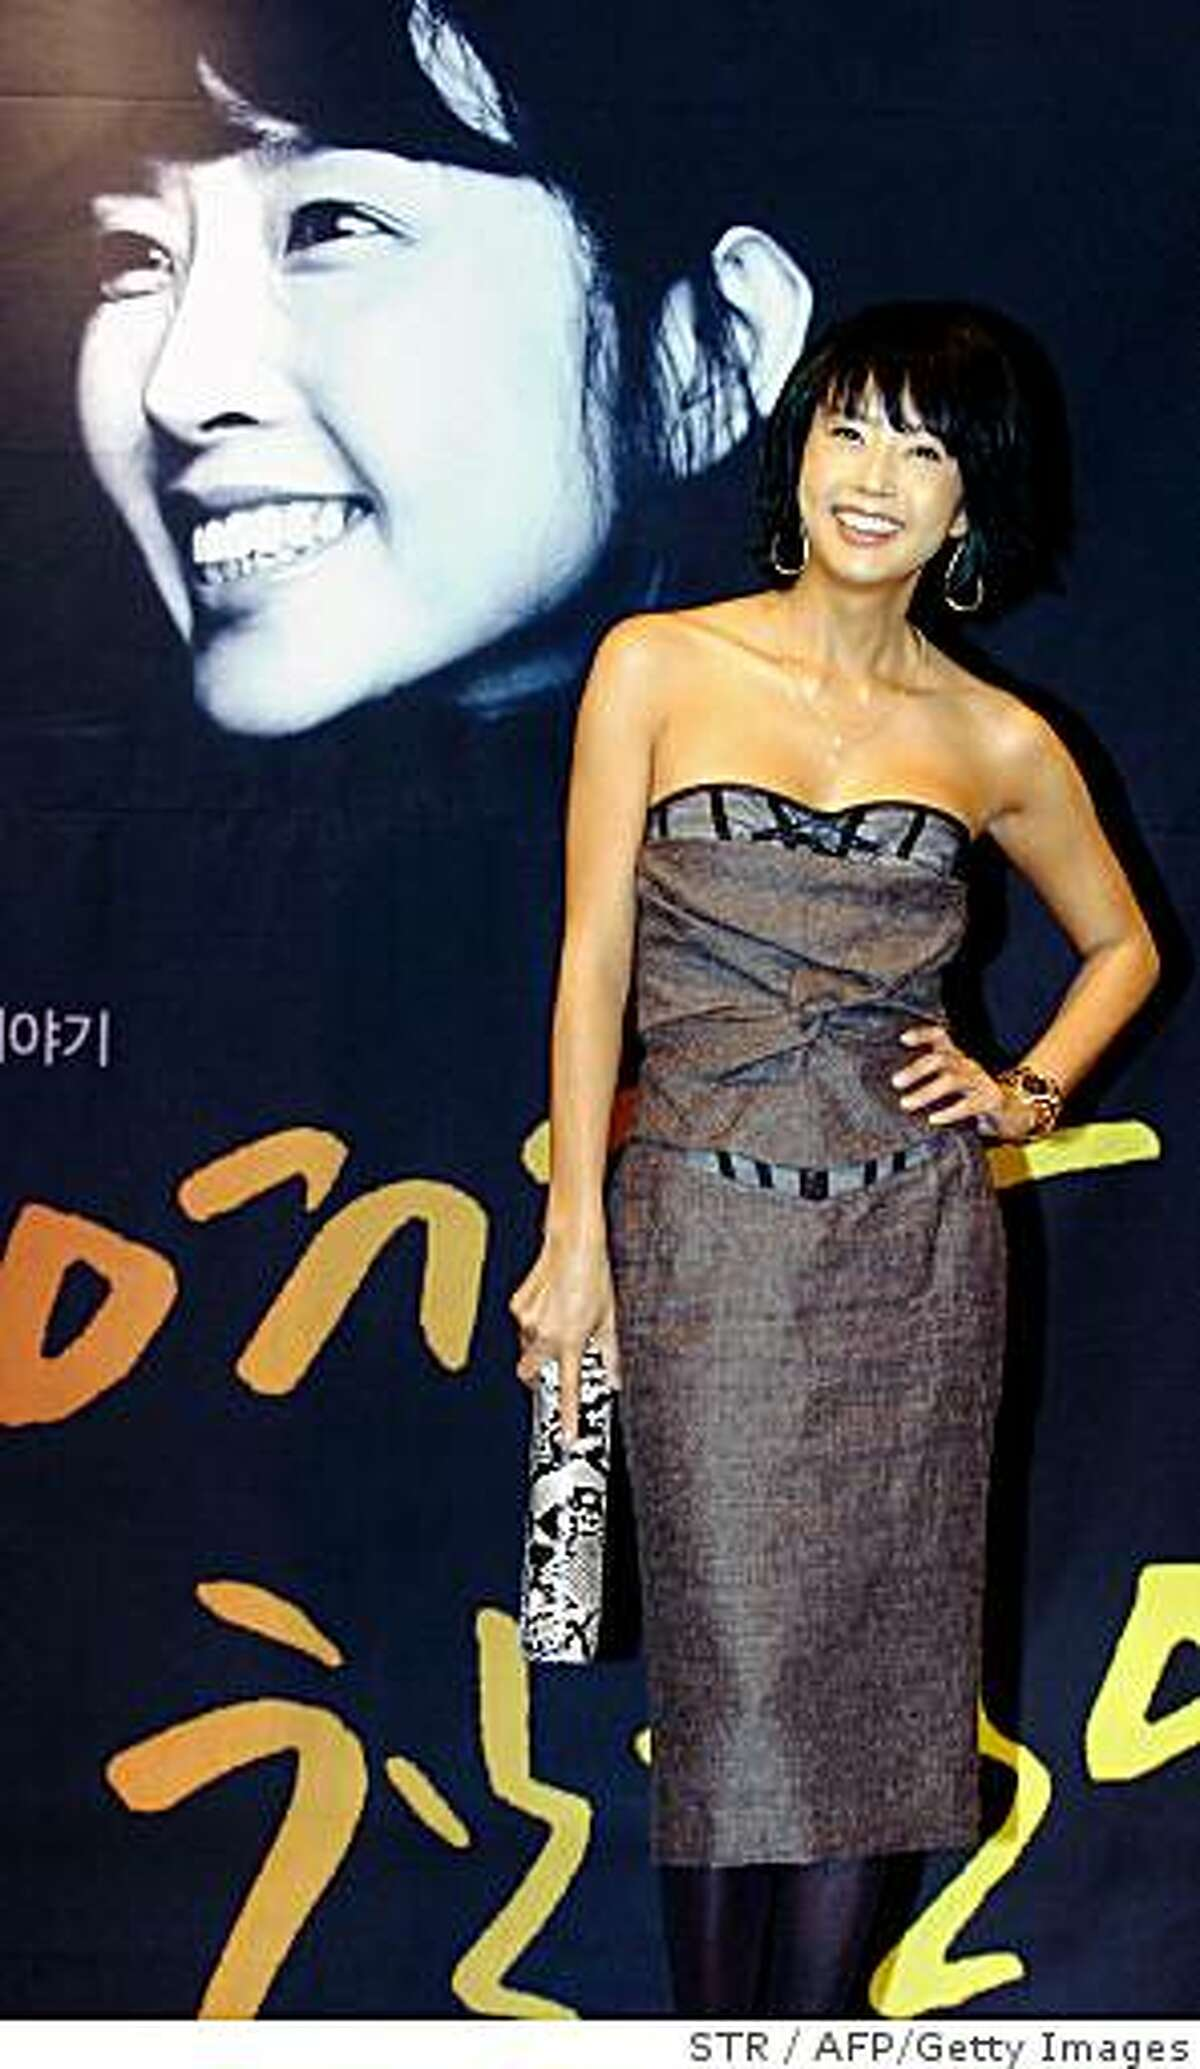 (FILES) Photo taken on December 19, 2006 in Seoul shows South Korean actress Choi Jin-Sil. Choi who had been dogged by Internet rumours over the suicide of an actor has apparently taken her own life, police said. REPUBLIC OF KOREA OUT AFP PHOTO/DONG-A ILBO (Photo credit should read STR/AFP/Getty Images)